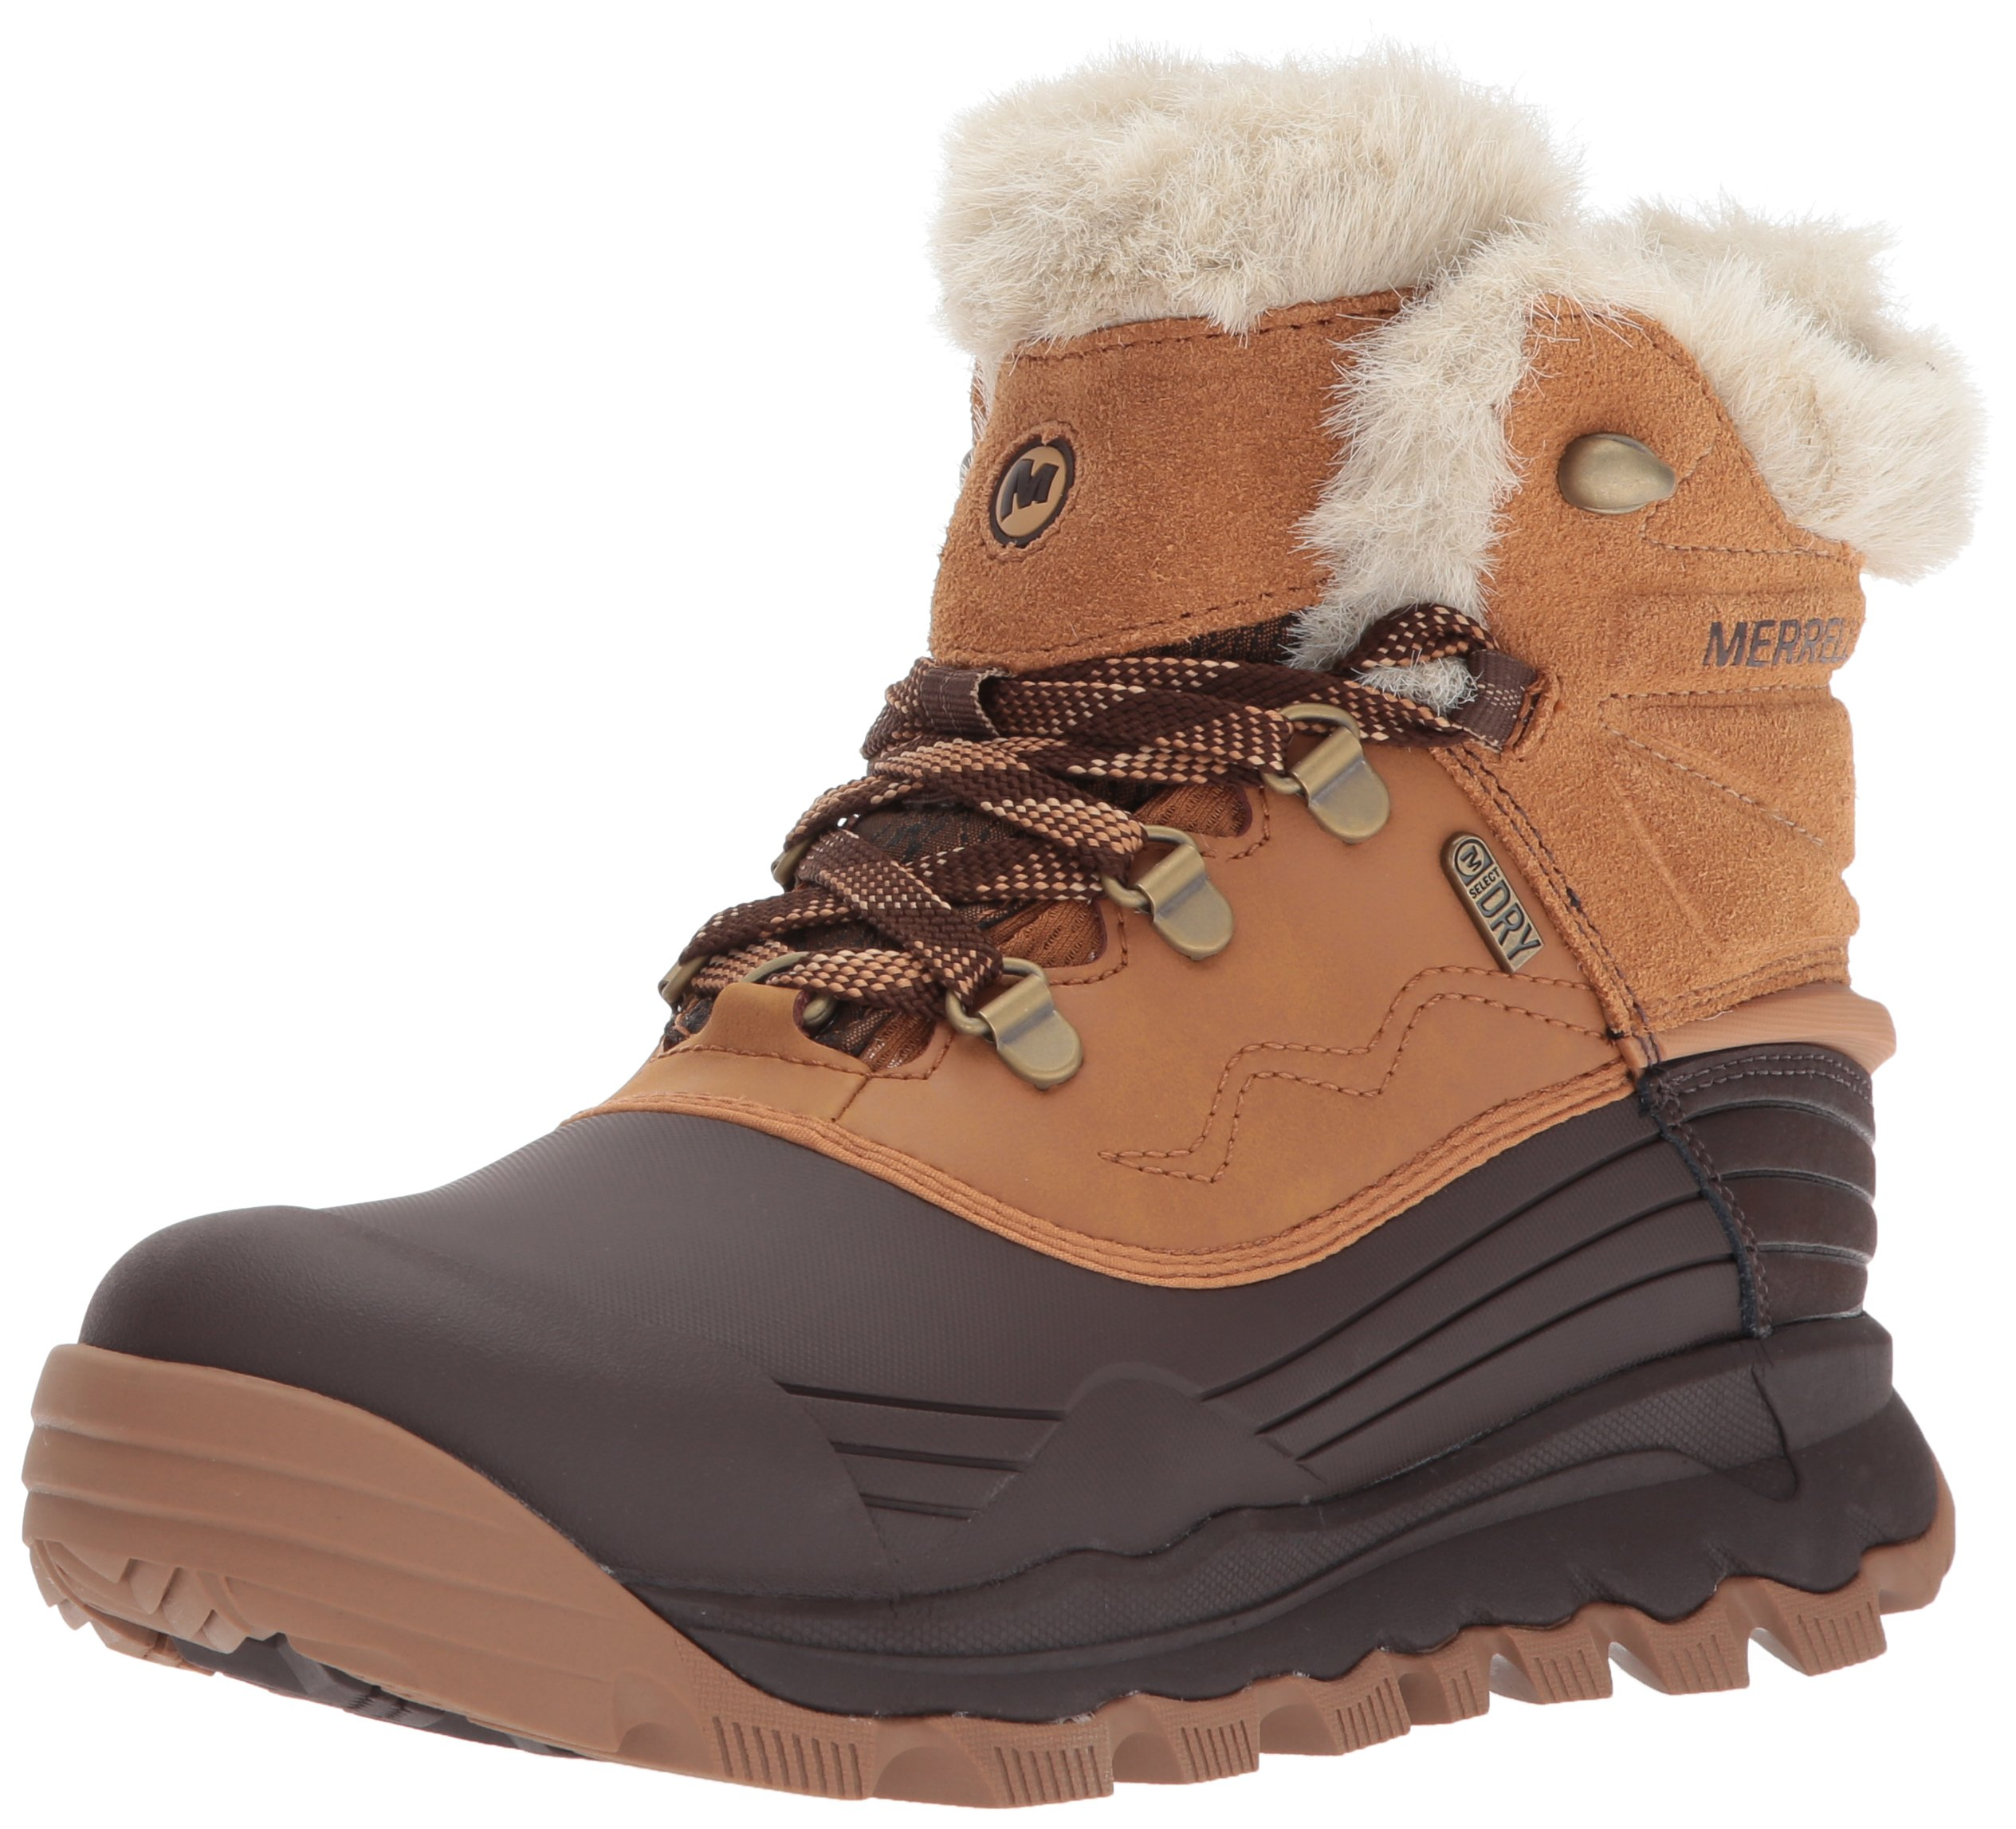 Merrell Women's Thermo Vortex 6'' Waterproof Snow Boot, Tan, 9 M US